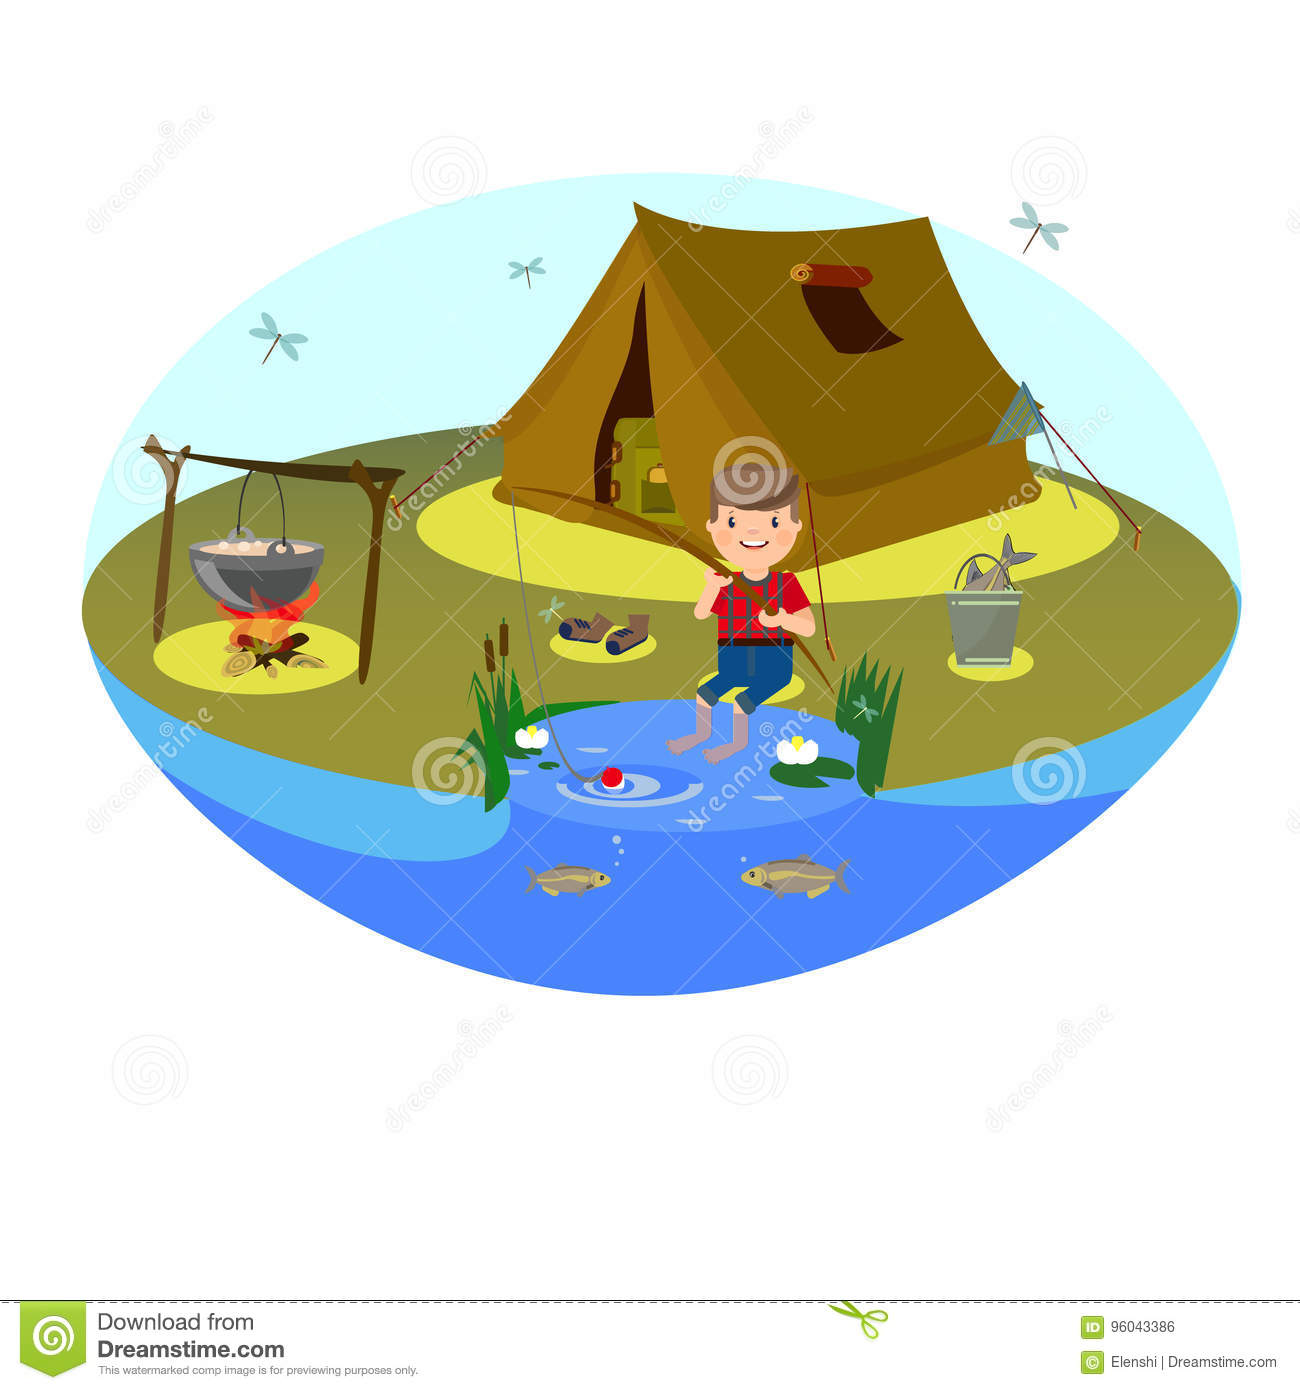 Vector Clipart For Tourism And Fishing The Boy Is Fishing On The Lake Tent Or Camping In The Clearing And Bonfire Stock Vector Illustration Of Green Summer 96043386